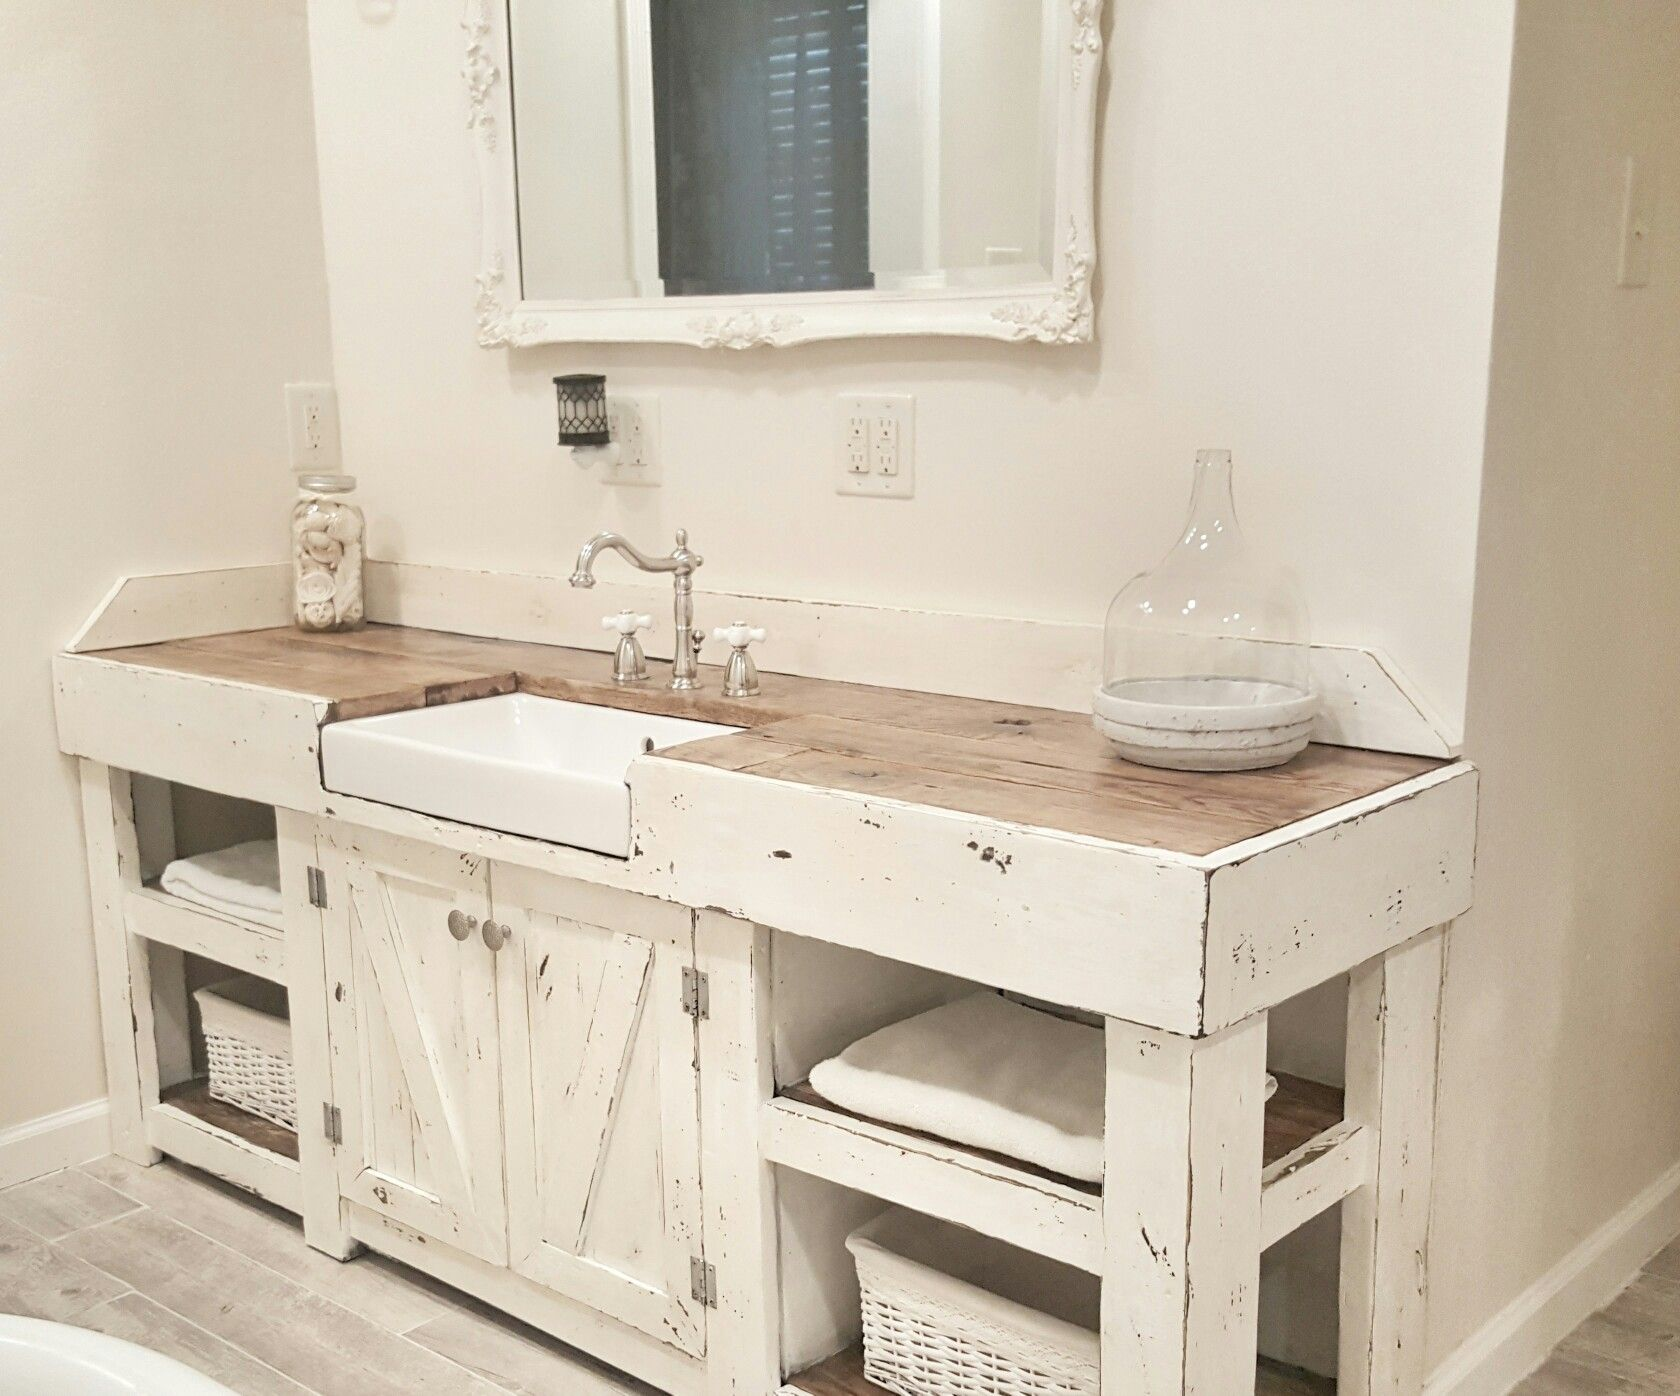 Cottage Bathroom Farmhouse Bathroom Farmhouse Vanity Farmhouse - Farmhouse style bathroom vanity for bathroom decor ideas